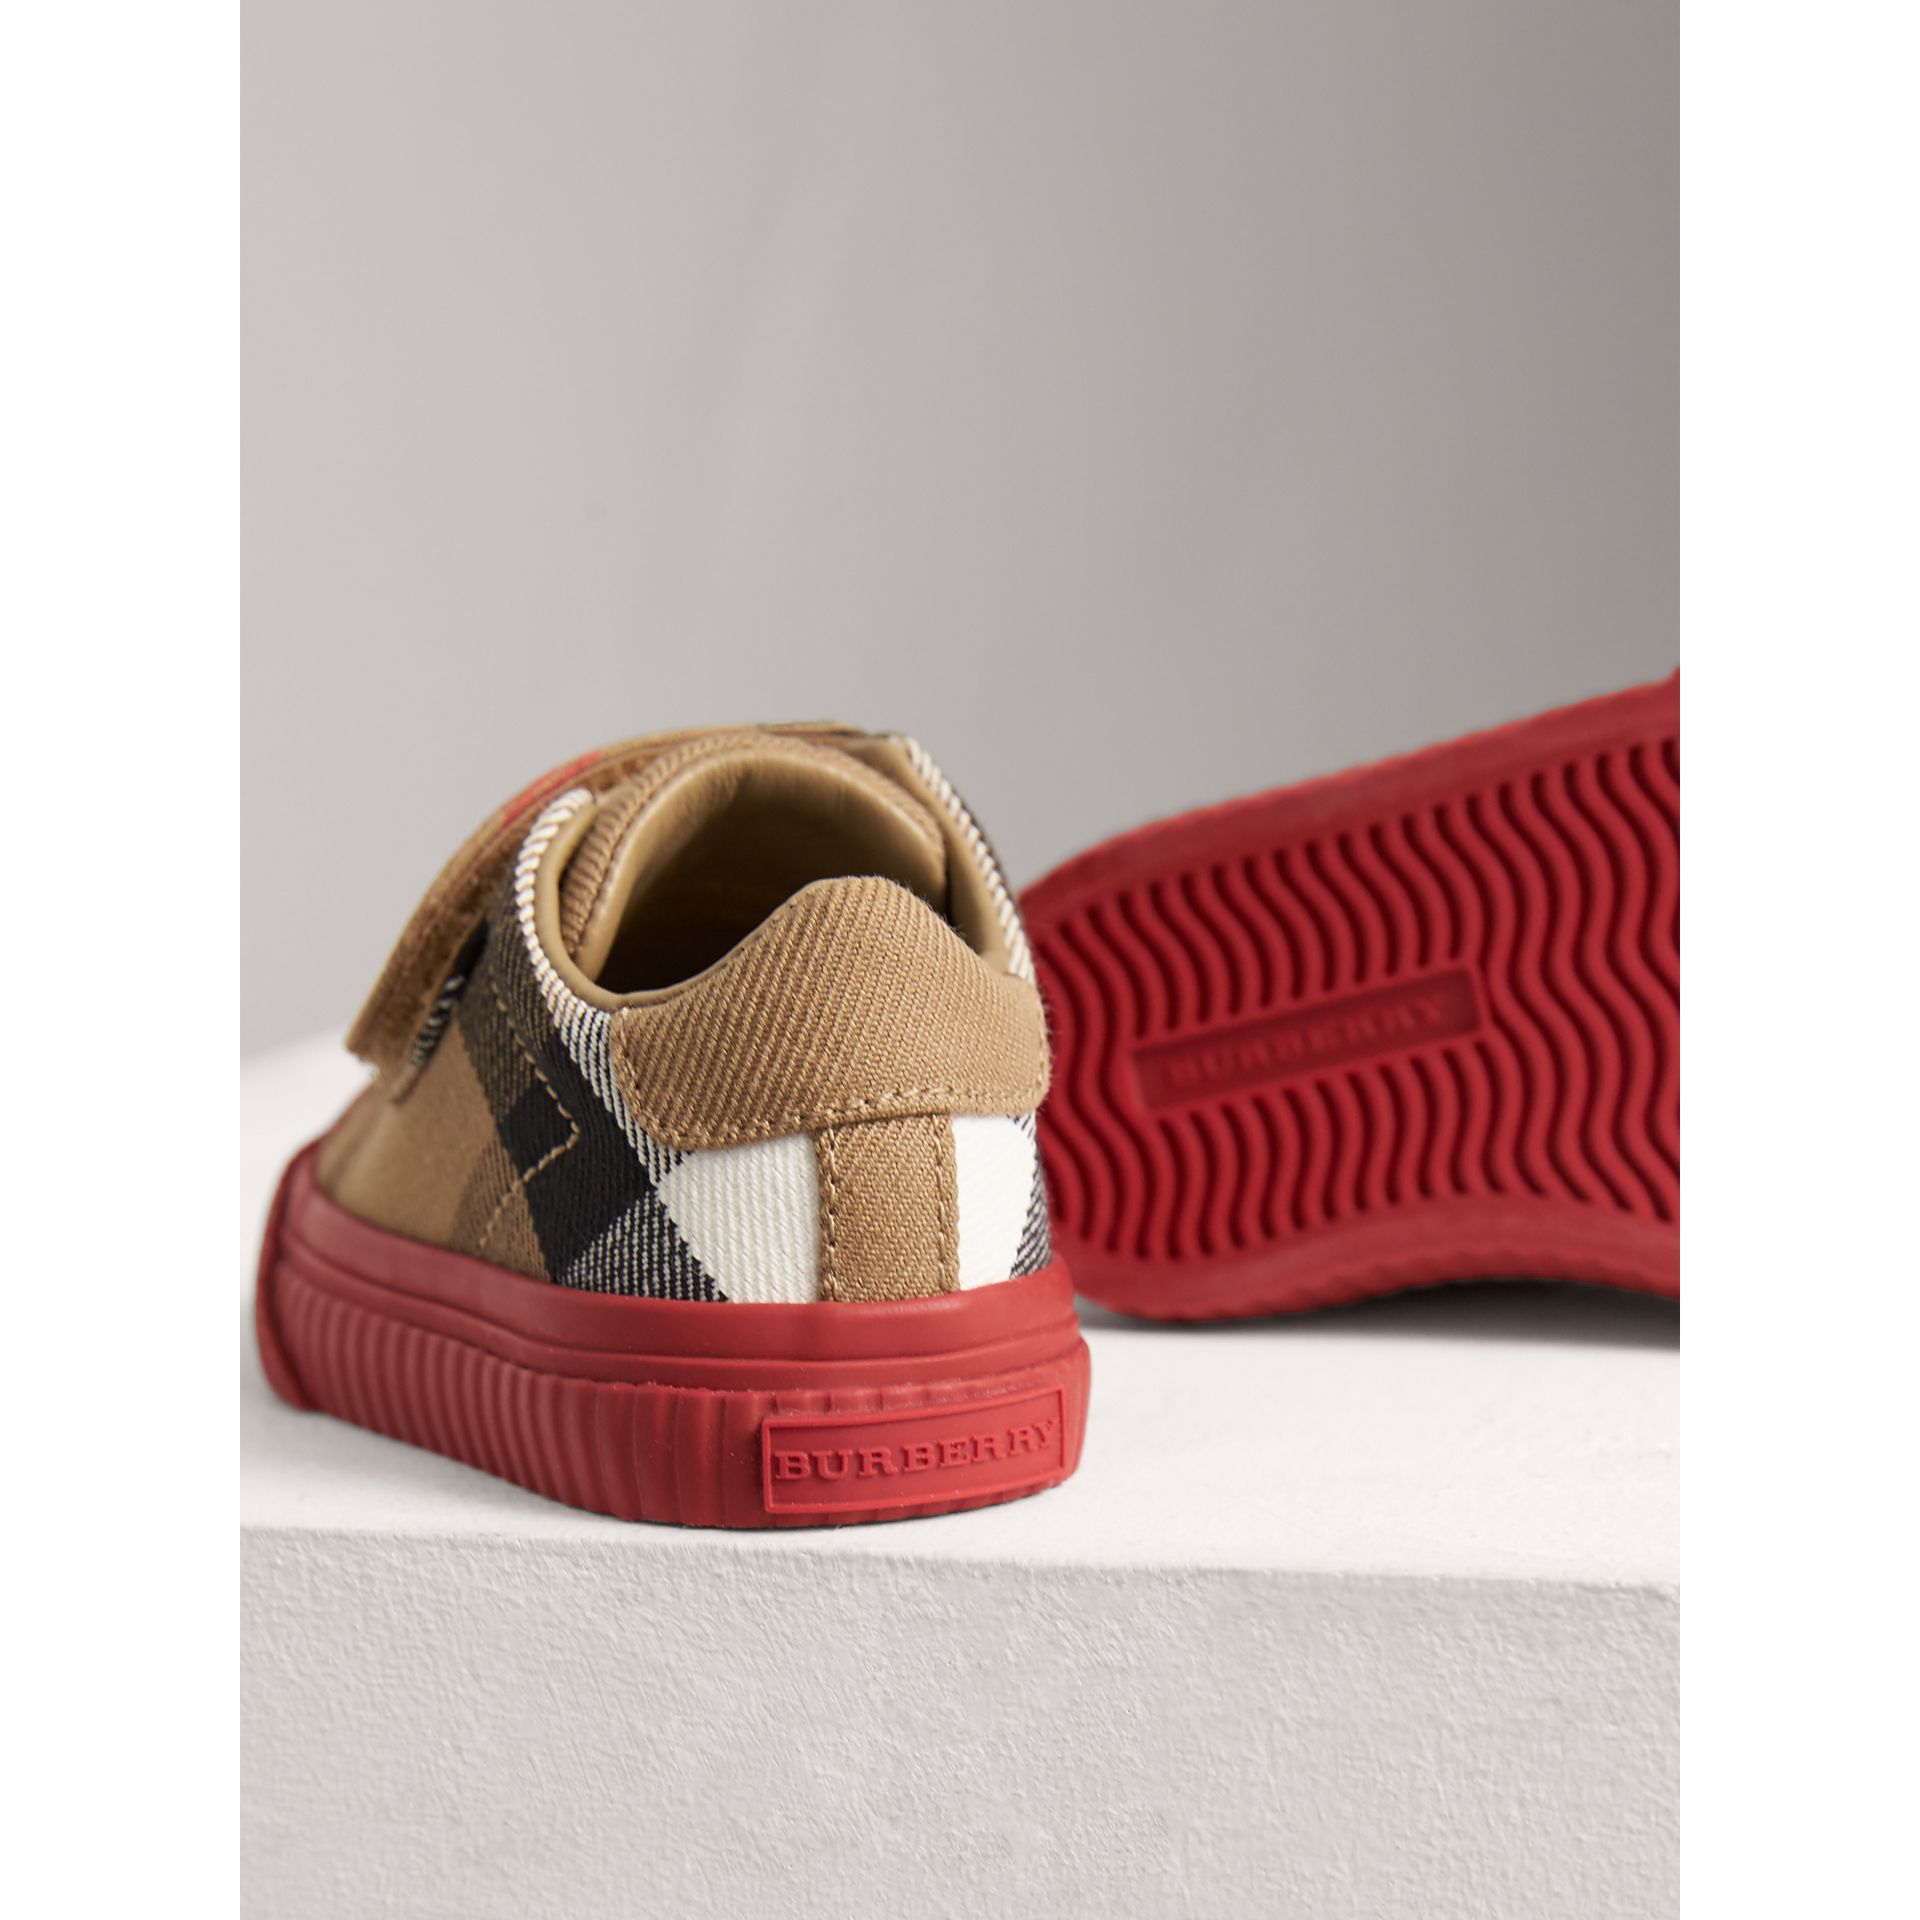 House Check and Leather Sneakers in Classic/parade Red | Burberry United Kingdom - gallery image 2